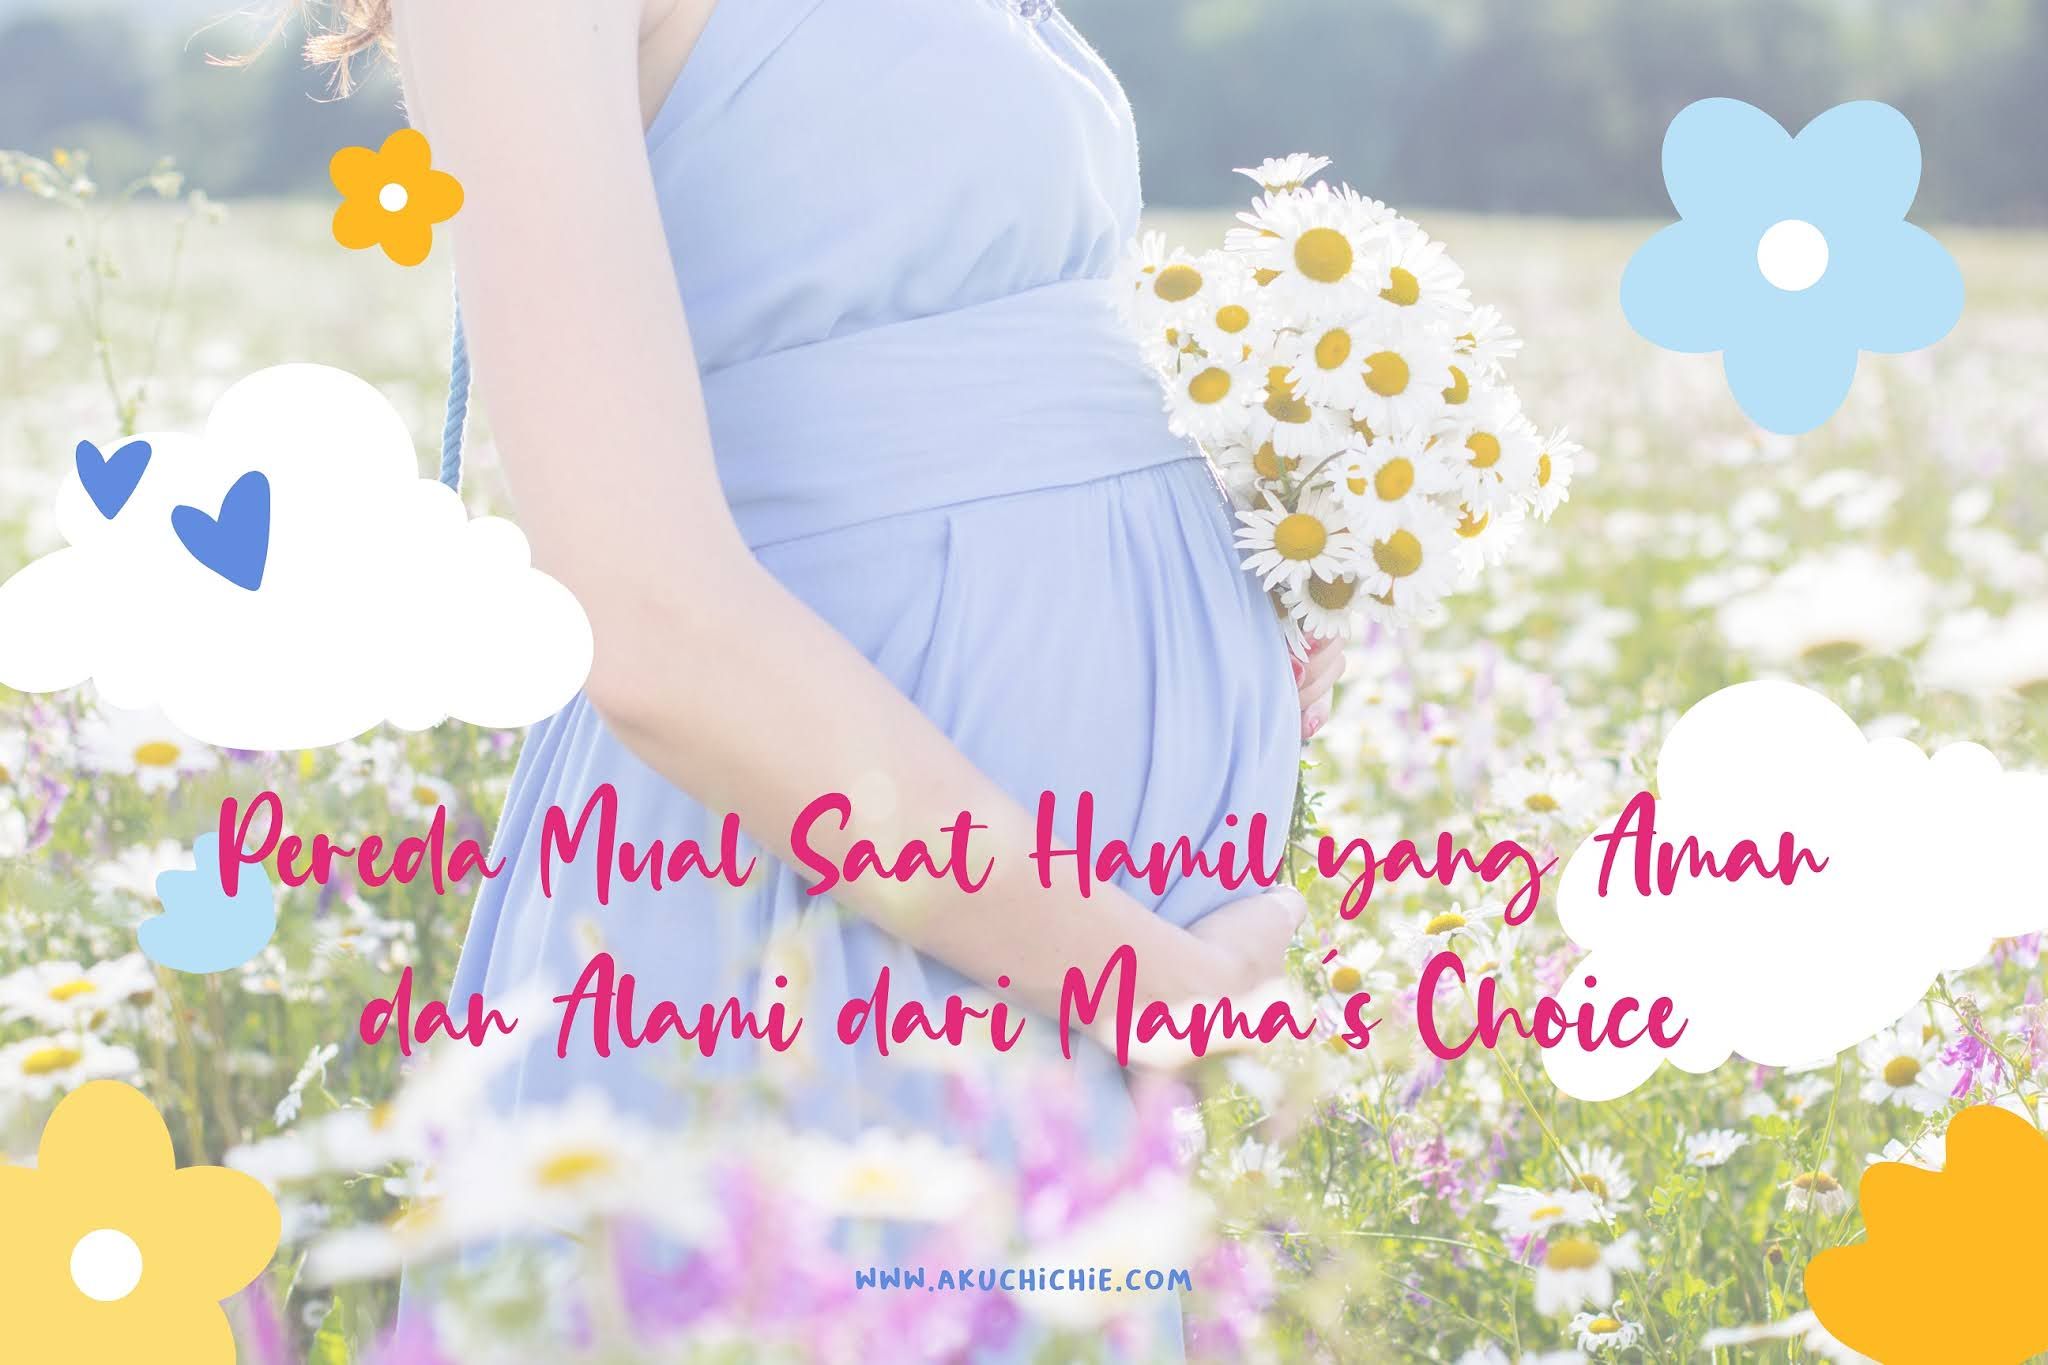 Mama's Choice Pregnancy Supplement